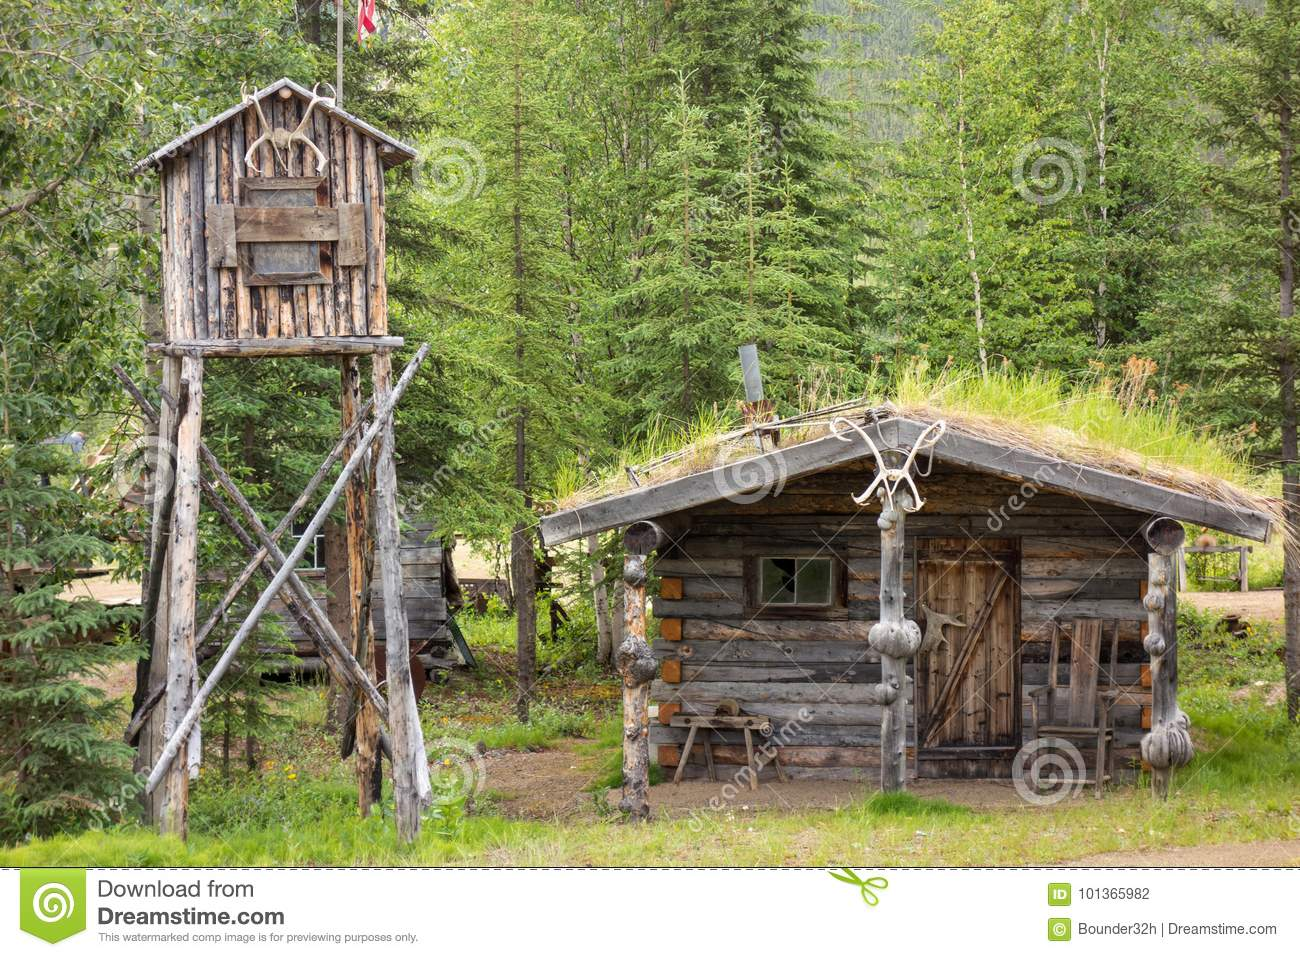 A Log Cabin And Cache In Alaska Stock Photo - Image of pretty, bench